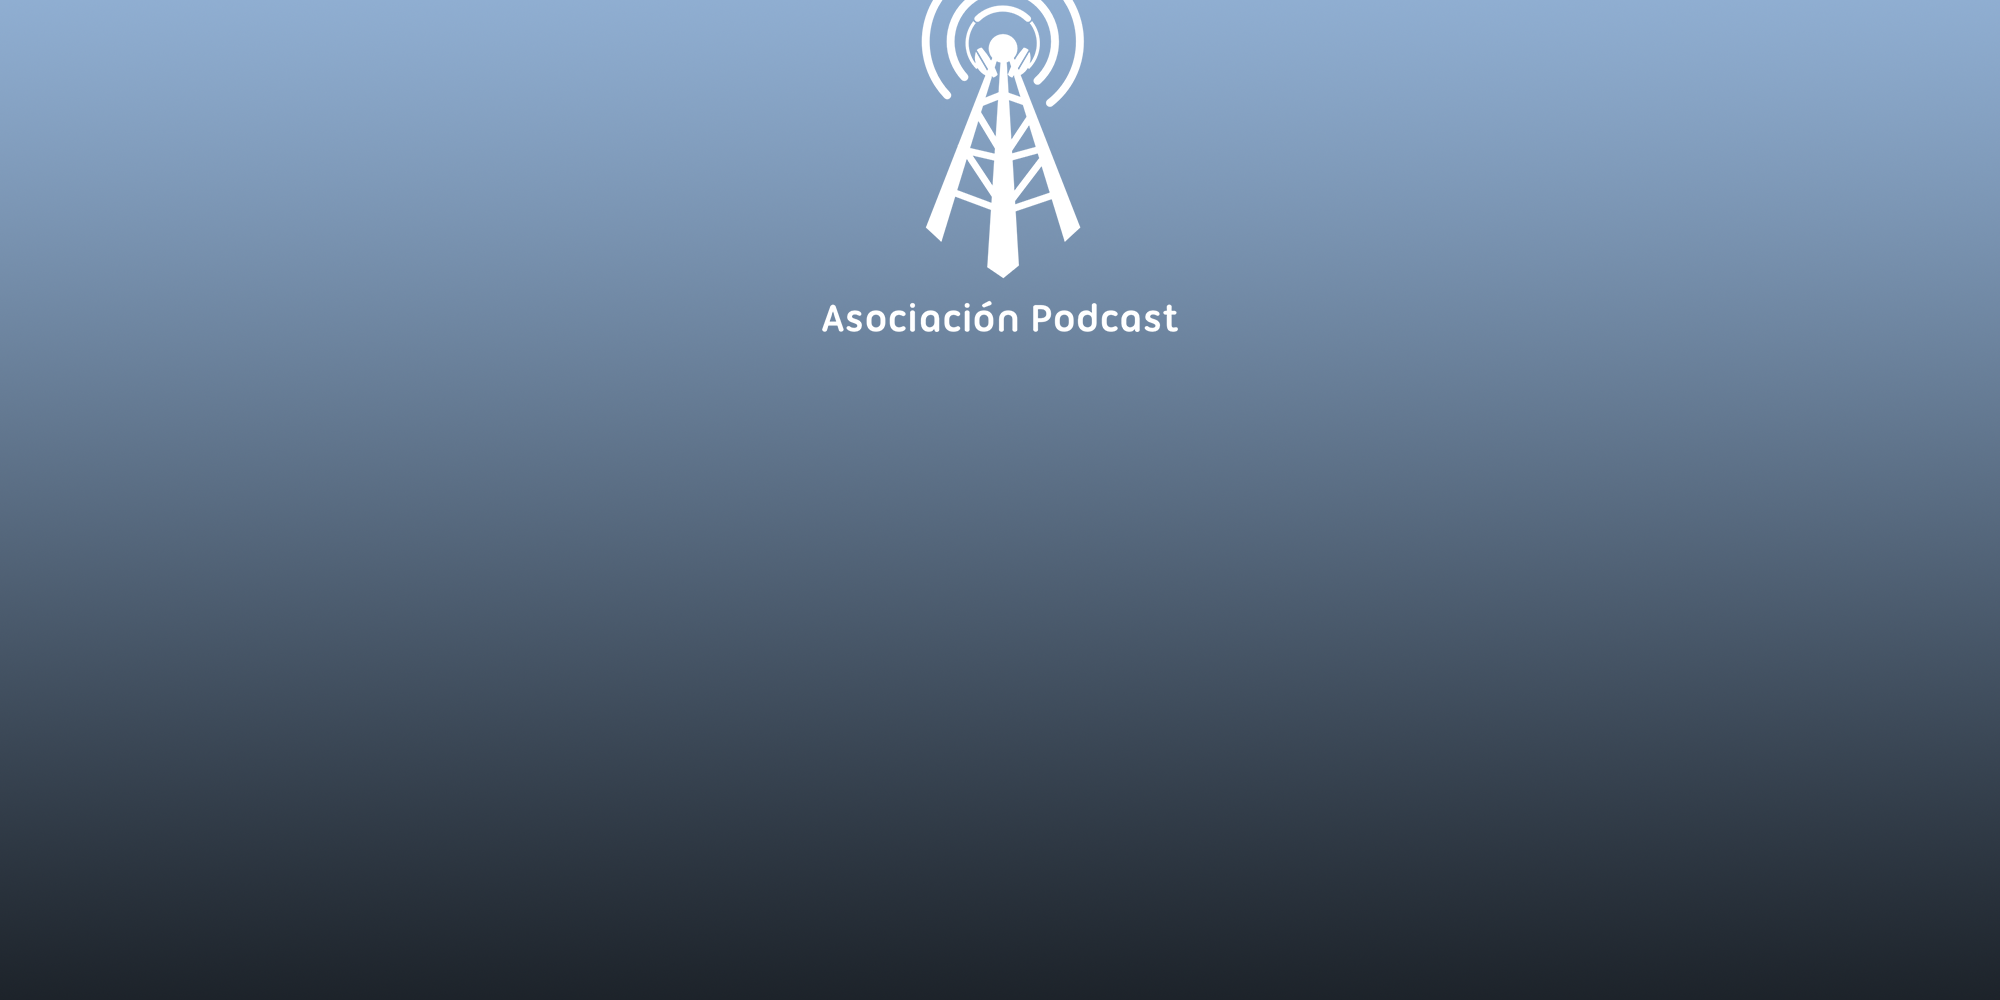 asociacionpodcast-Landing_page_background-2000x1250